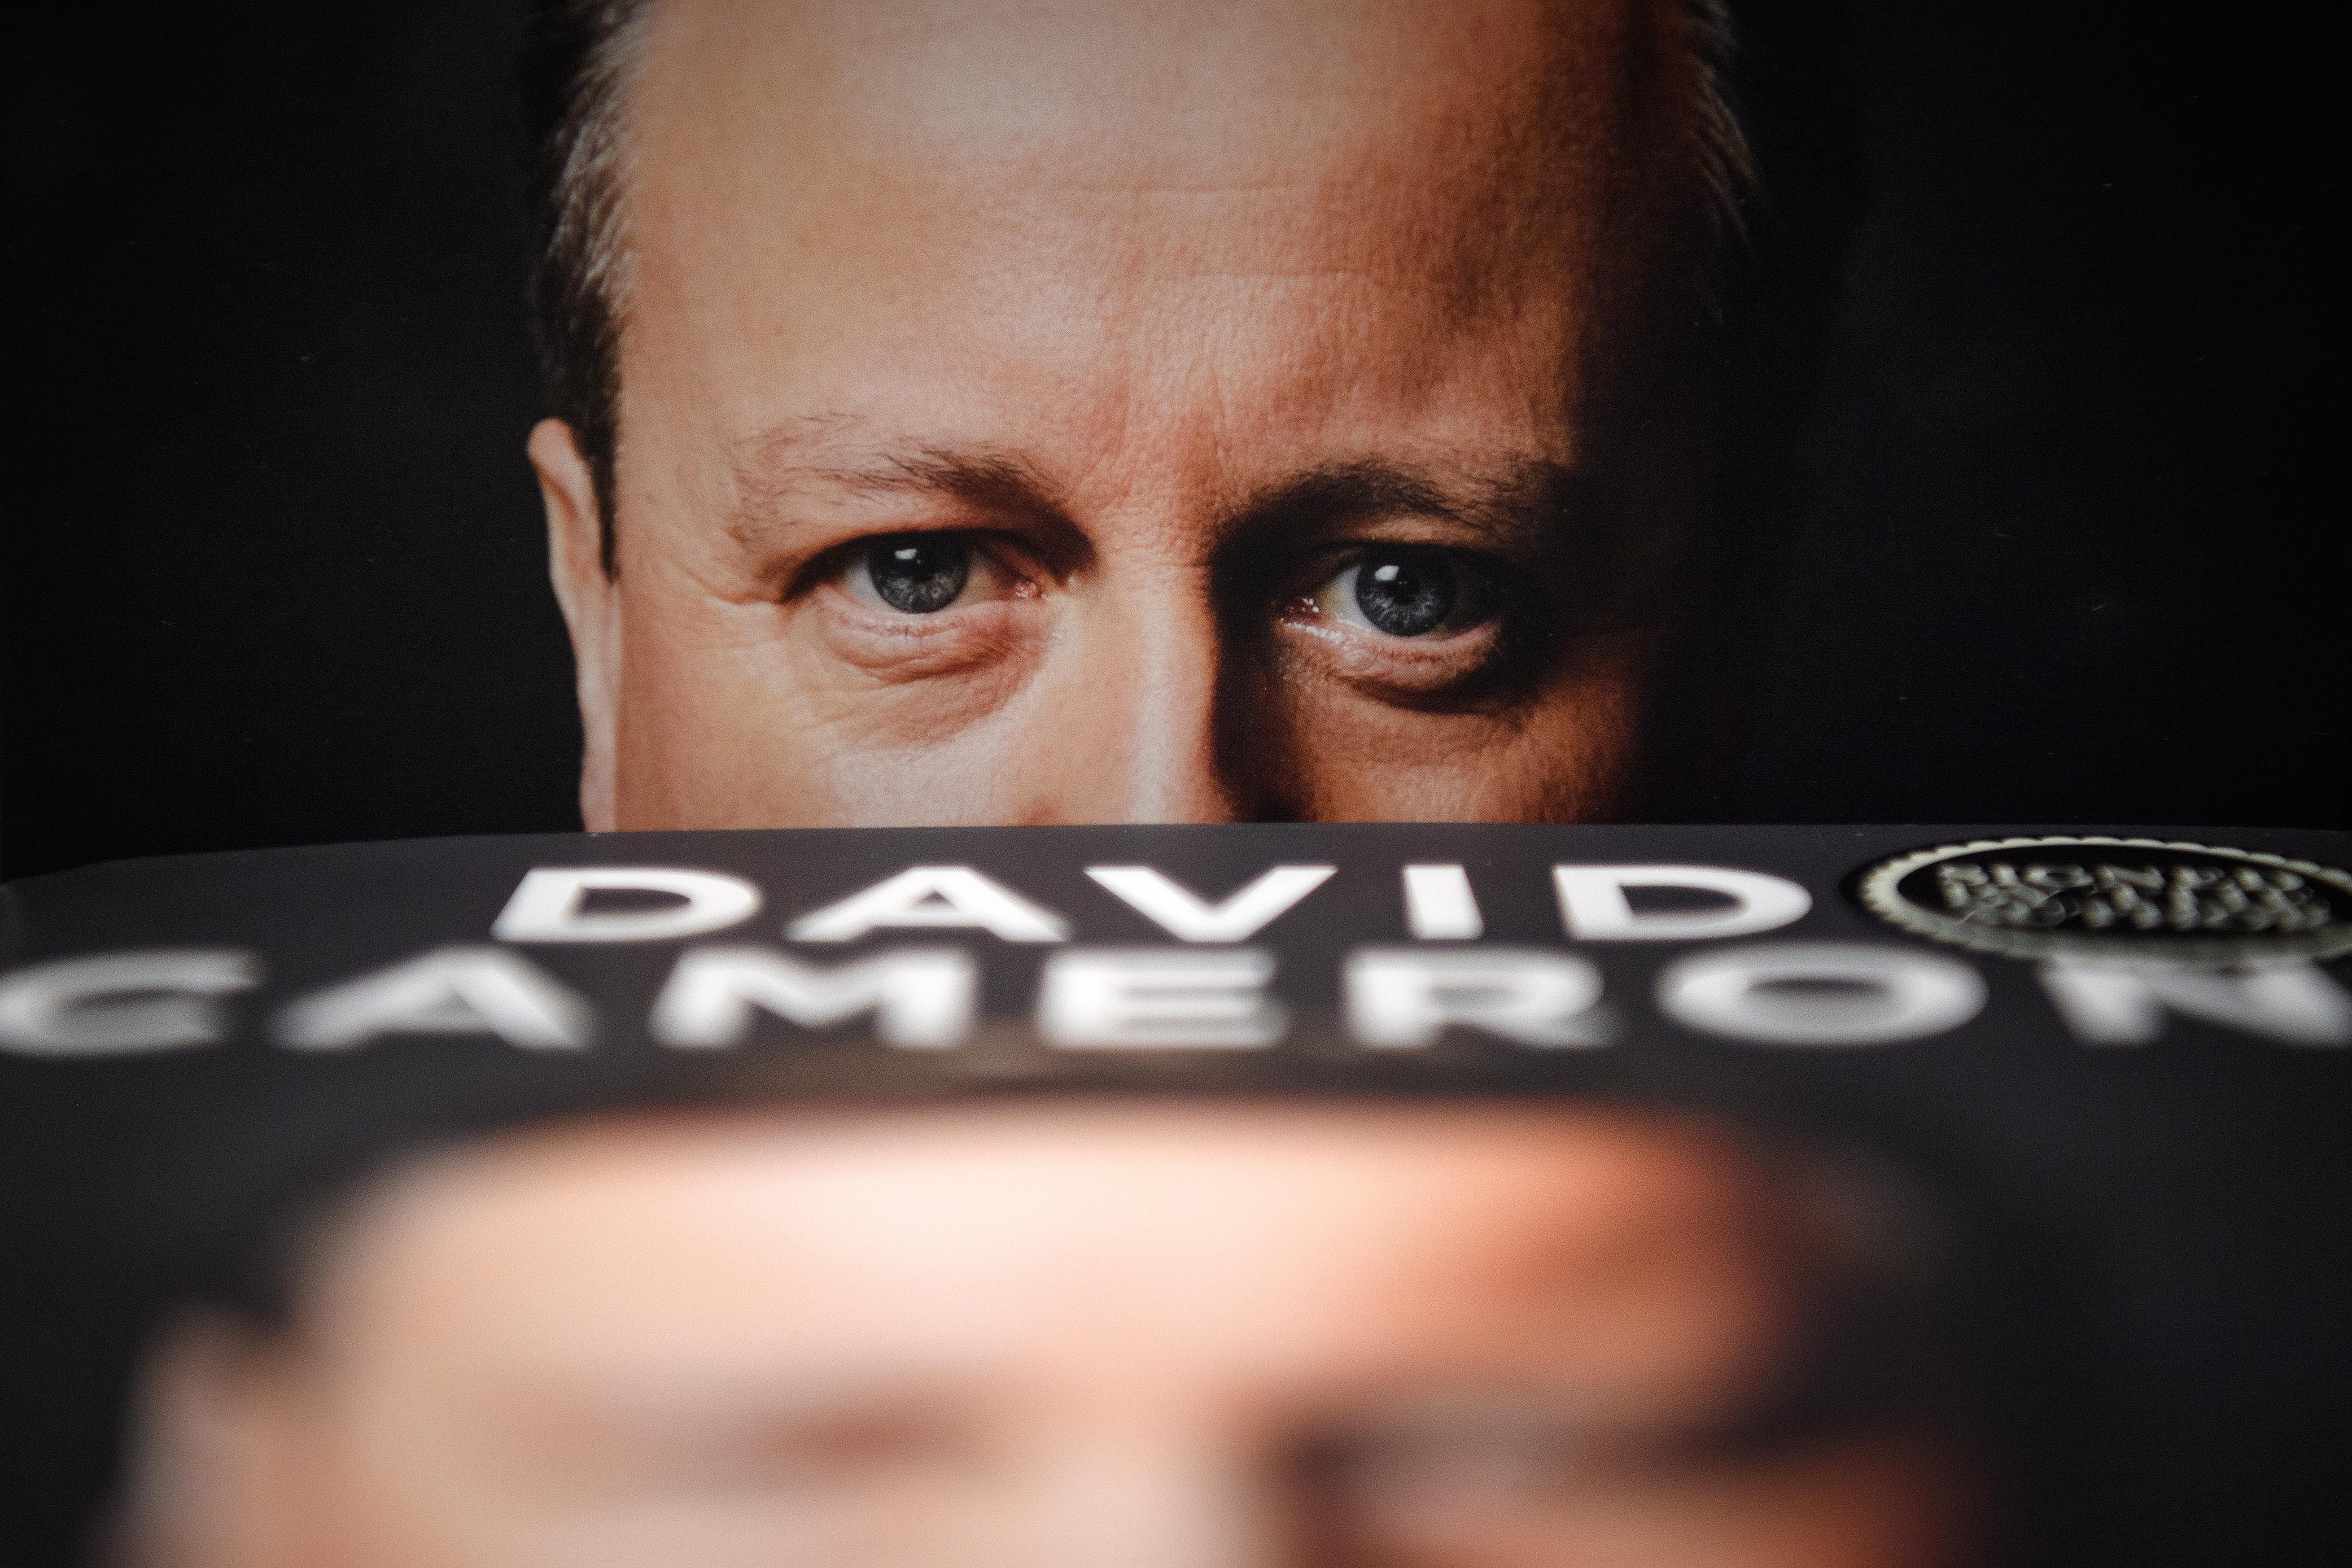 David Cameron's book found in shop with 'alternative' cover left by prankster